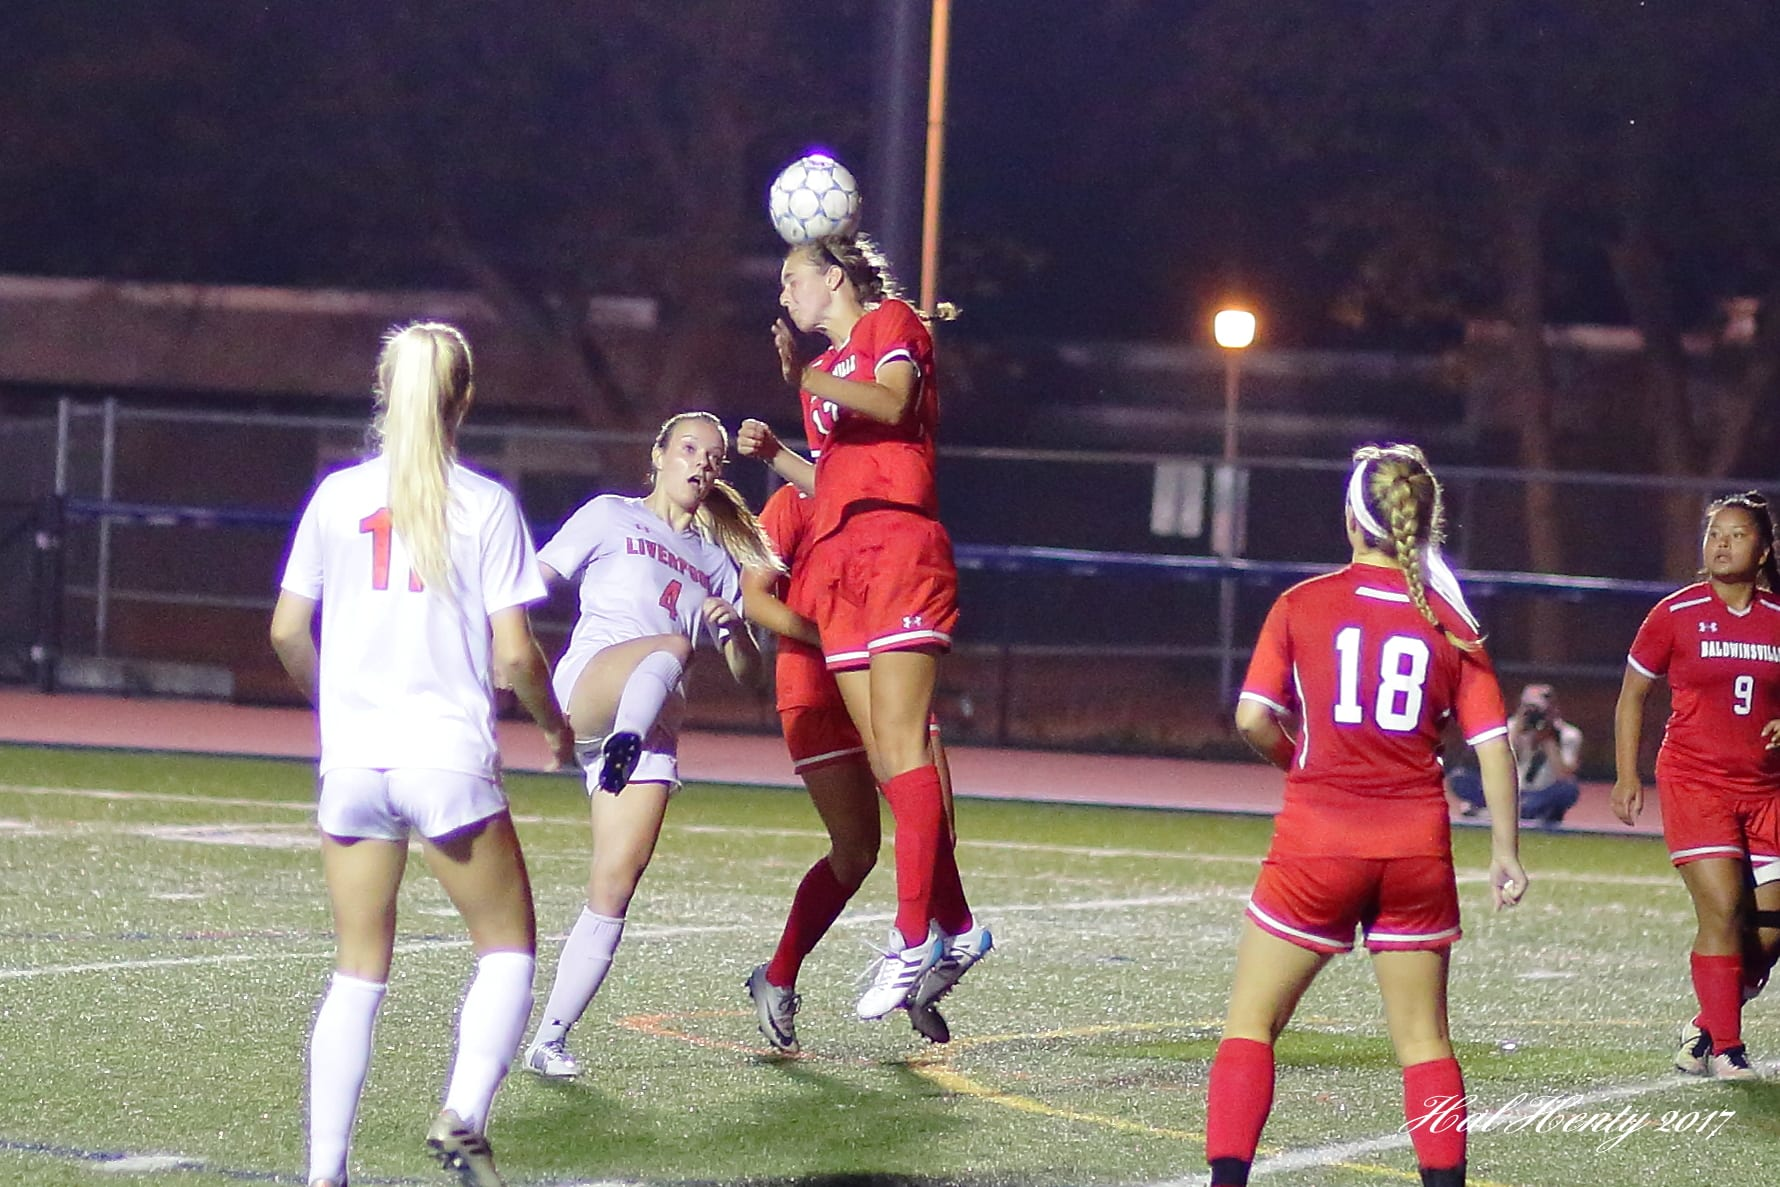 B'ville girls soccer stopped by Liverpool, 2-1